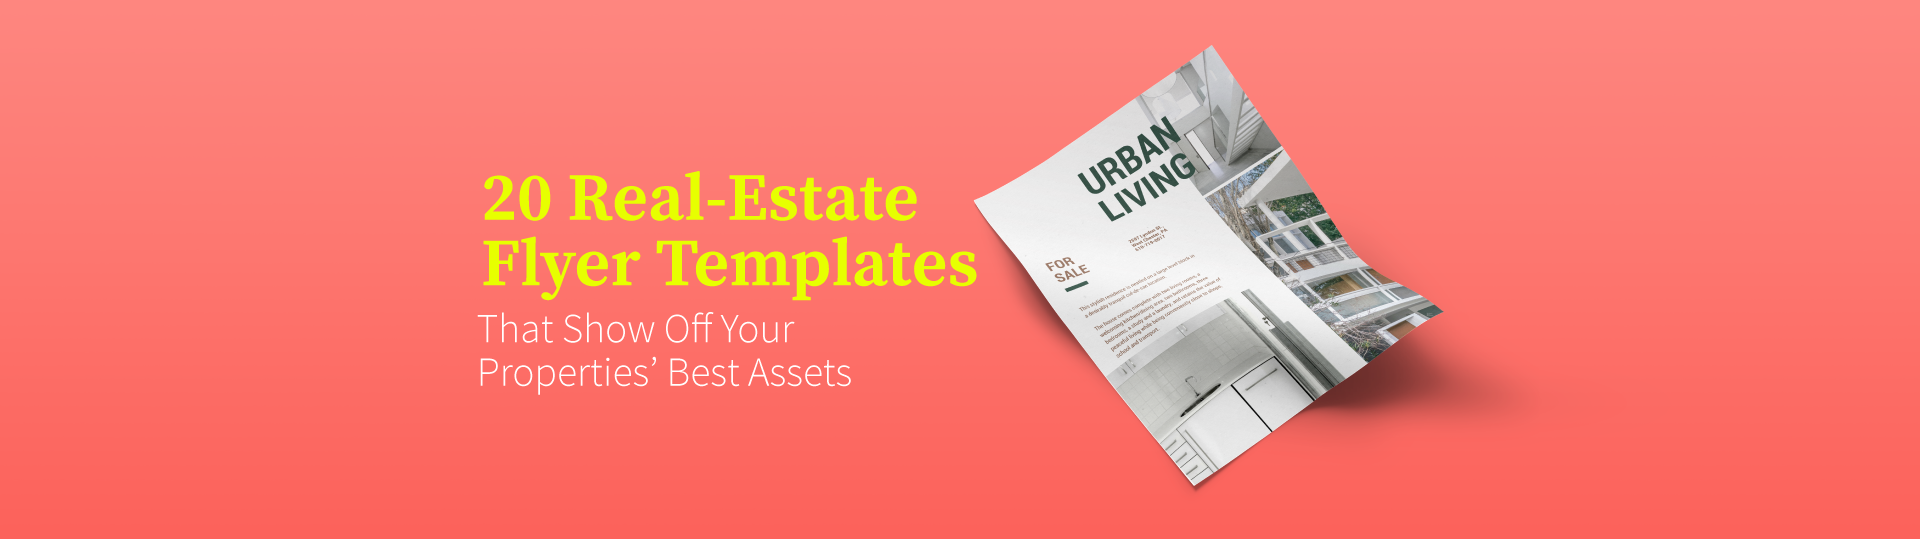 20 eye catching do it yourself real estate flyer templates from the 20 eye catching do it yourself real estate flyer templates from the canva solutioingenieria Choice Image